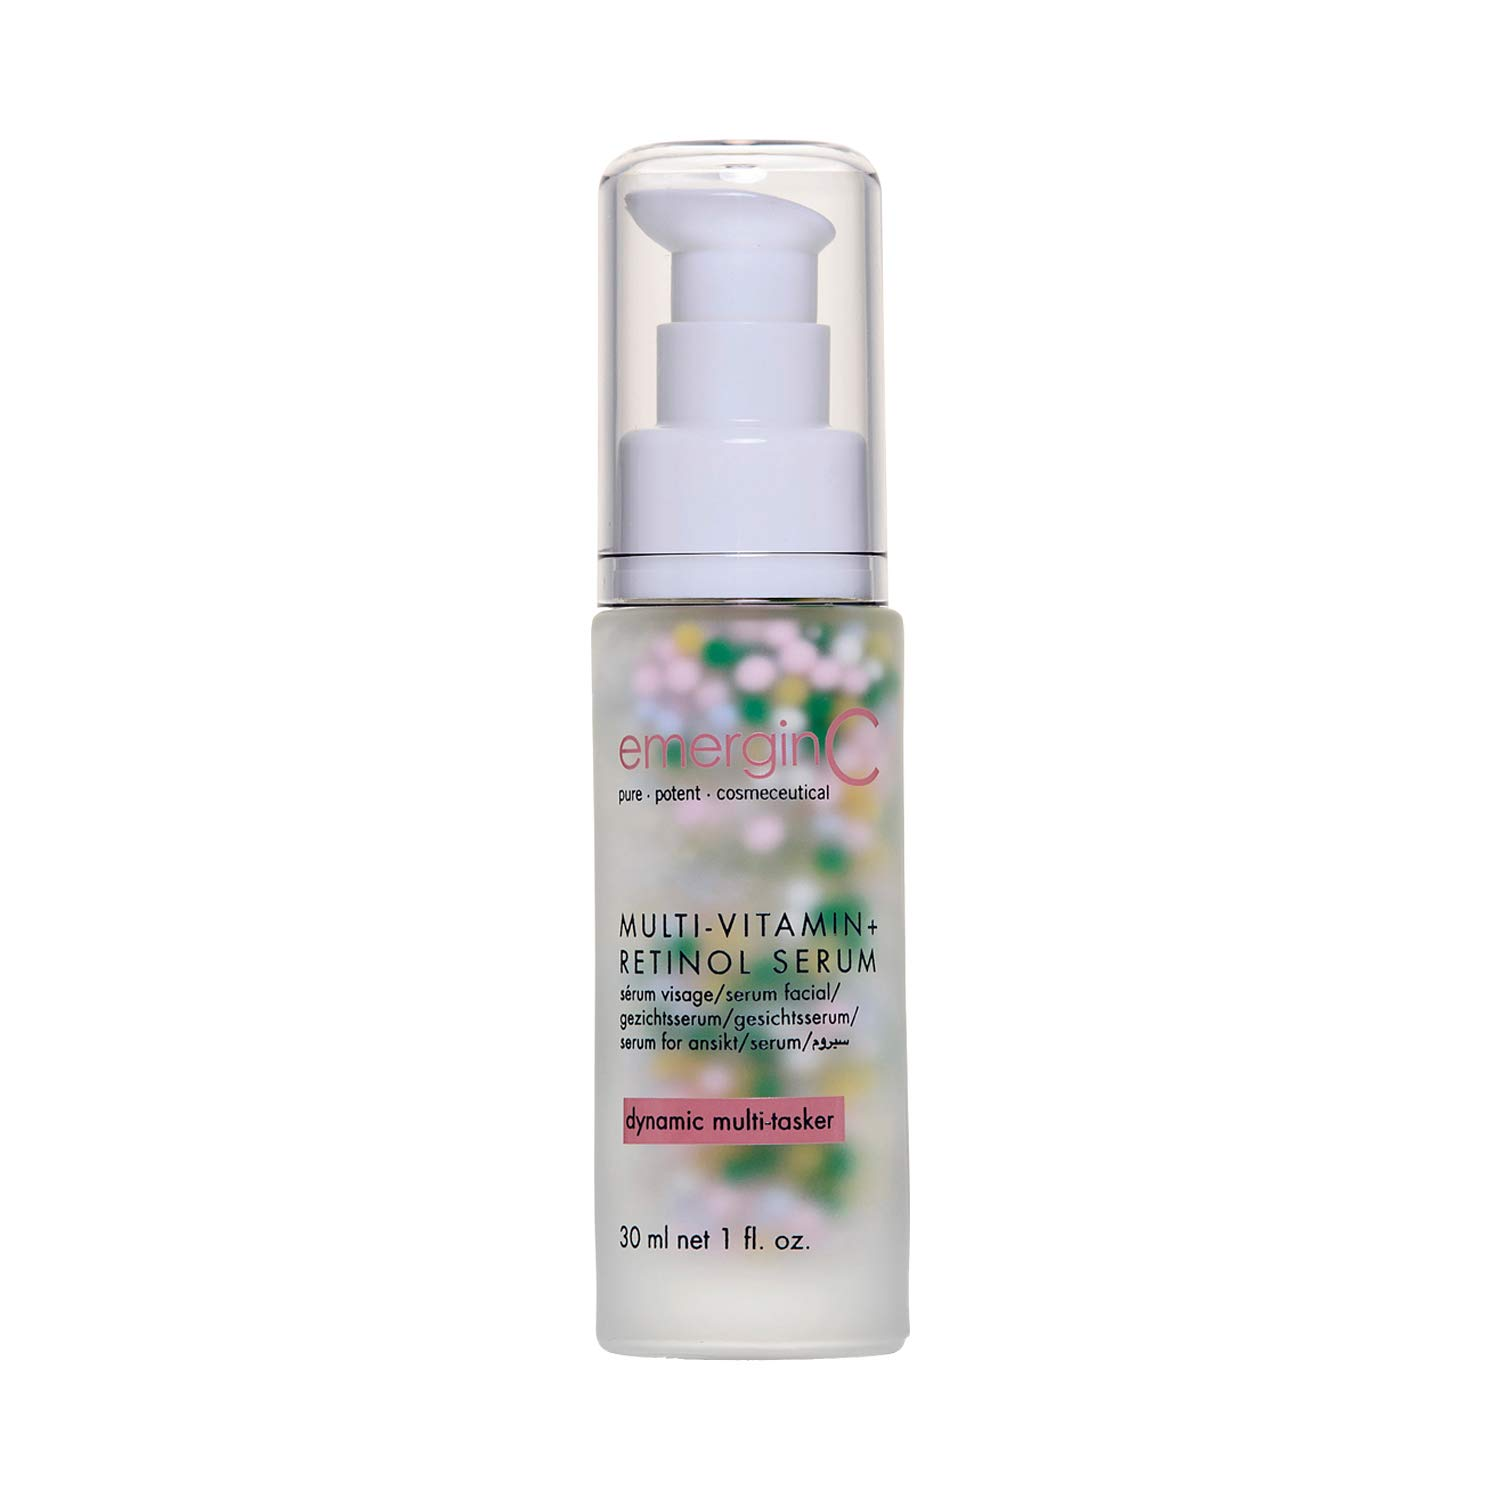 emerginC MultiVitamin + Retinol Serum - Micro-Encapsulated Spheres + Vitamin C to Help Combat Visible Signs of Aging, Sensitive Skin + Minor Redness (1.0 Ounces, 30 Milliliters)